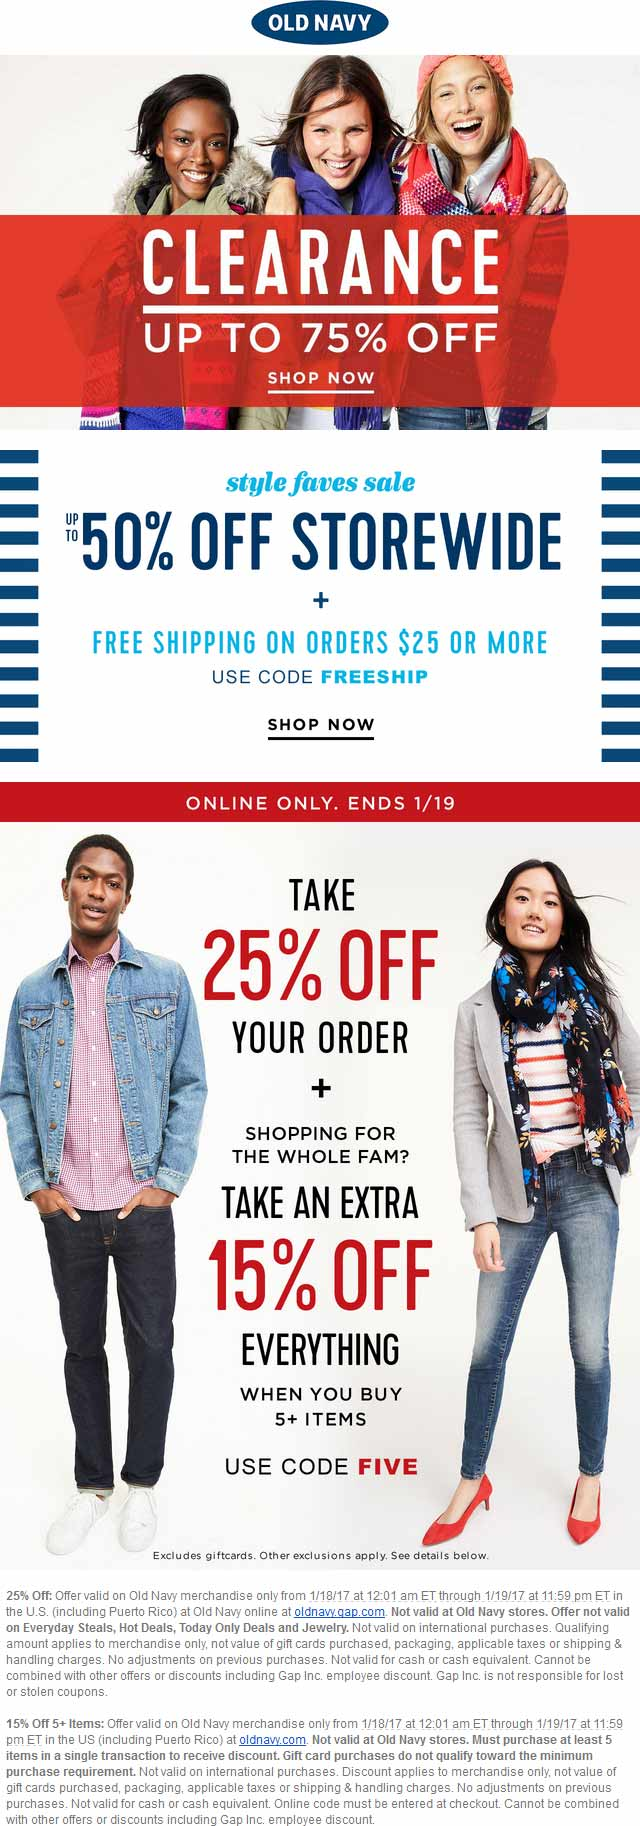 OldNavy.com Promo Coupon 25-40% off online at Old Navy via promo code FIVE